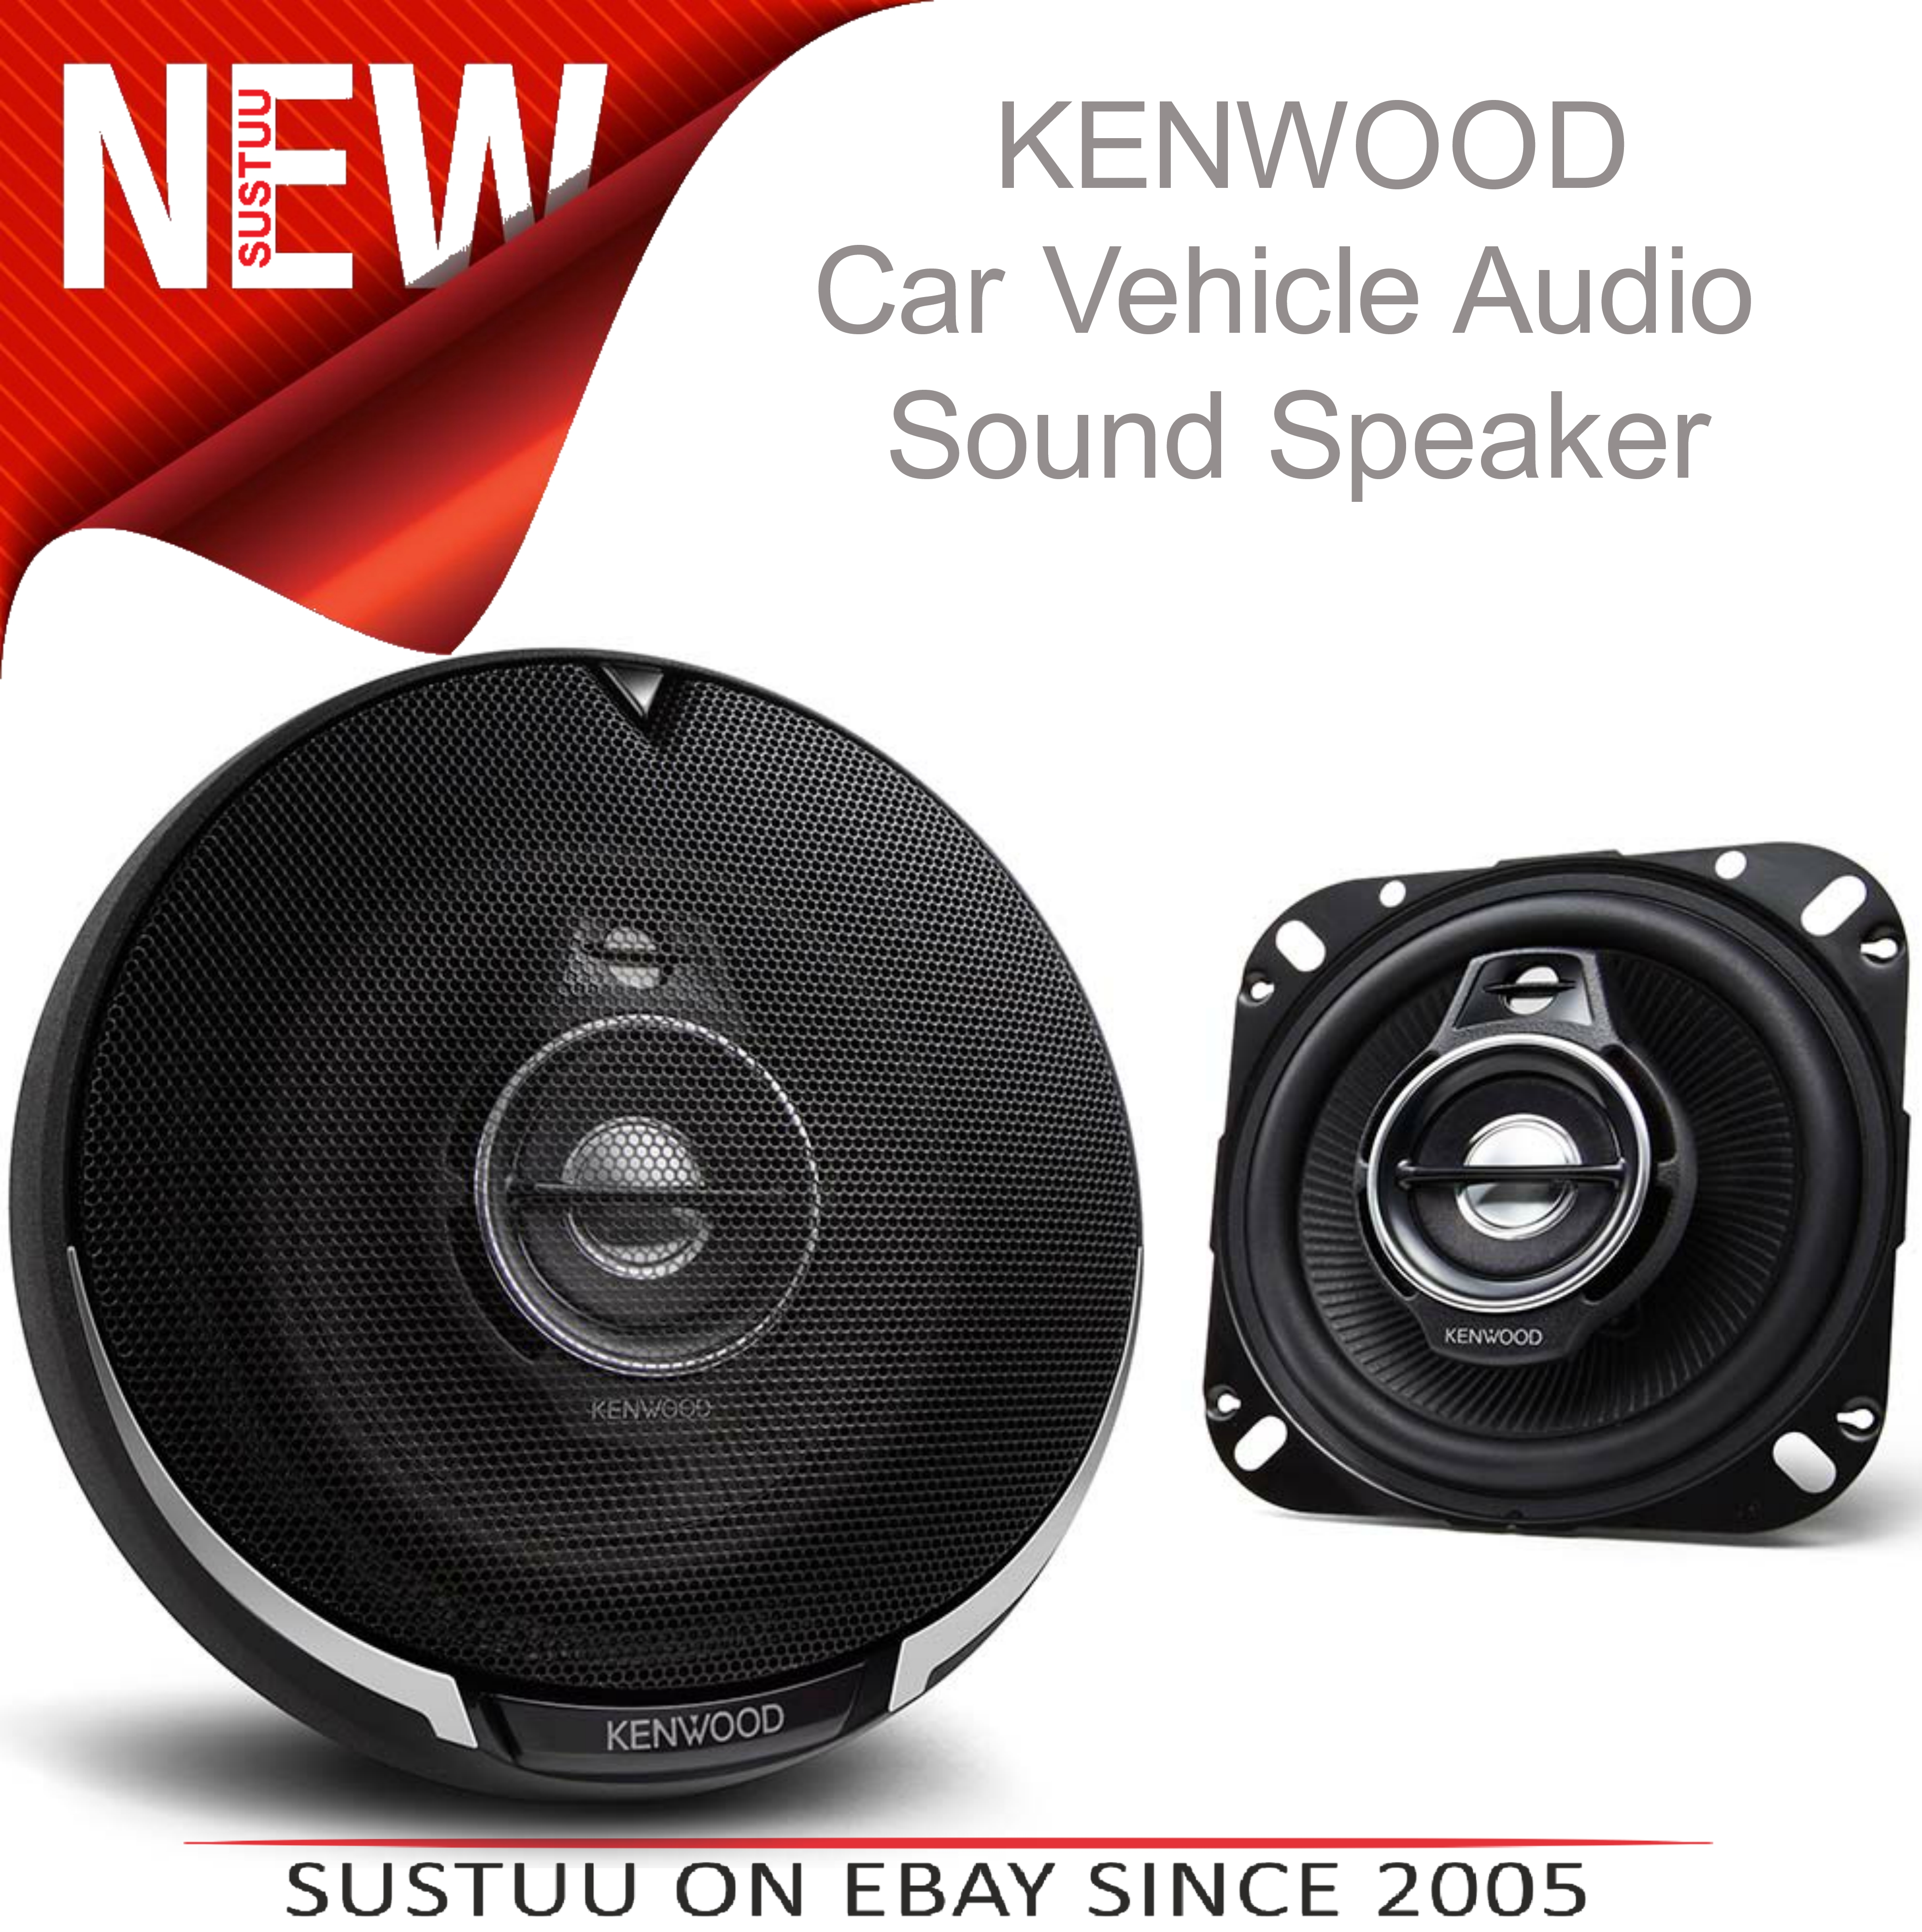 KENWOOD KFC PS1095 100mm 3 Way In Car Vehicle Audio Sound Speaker